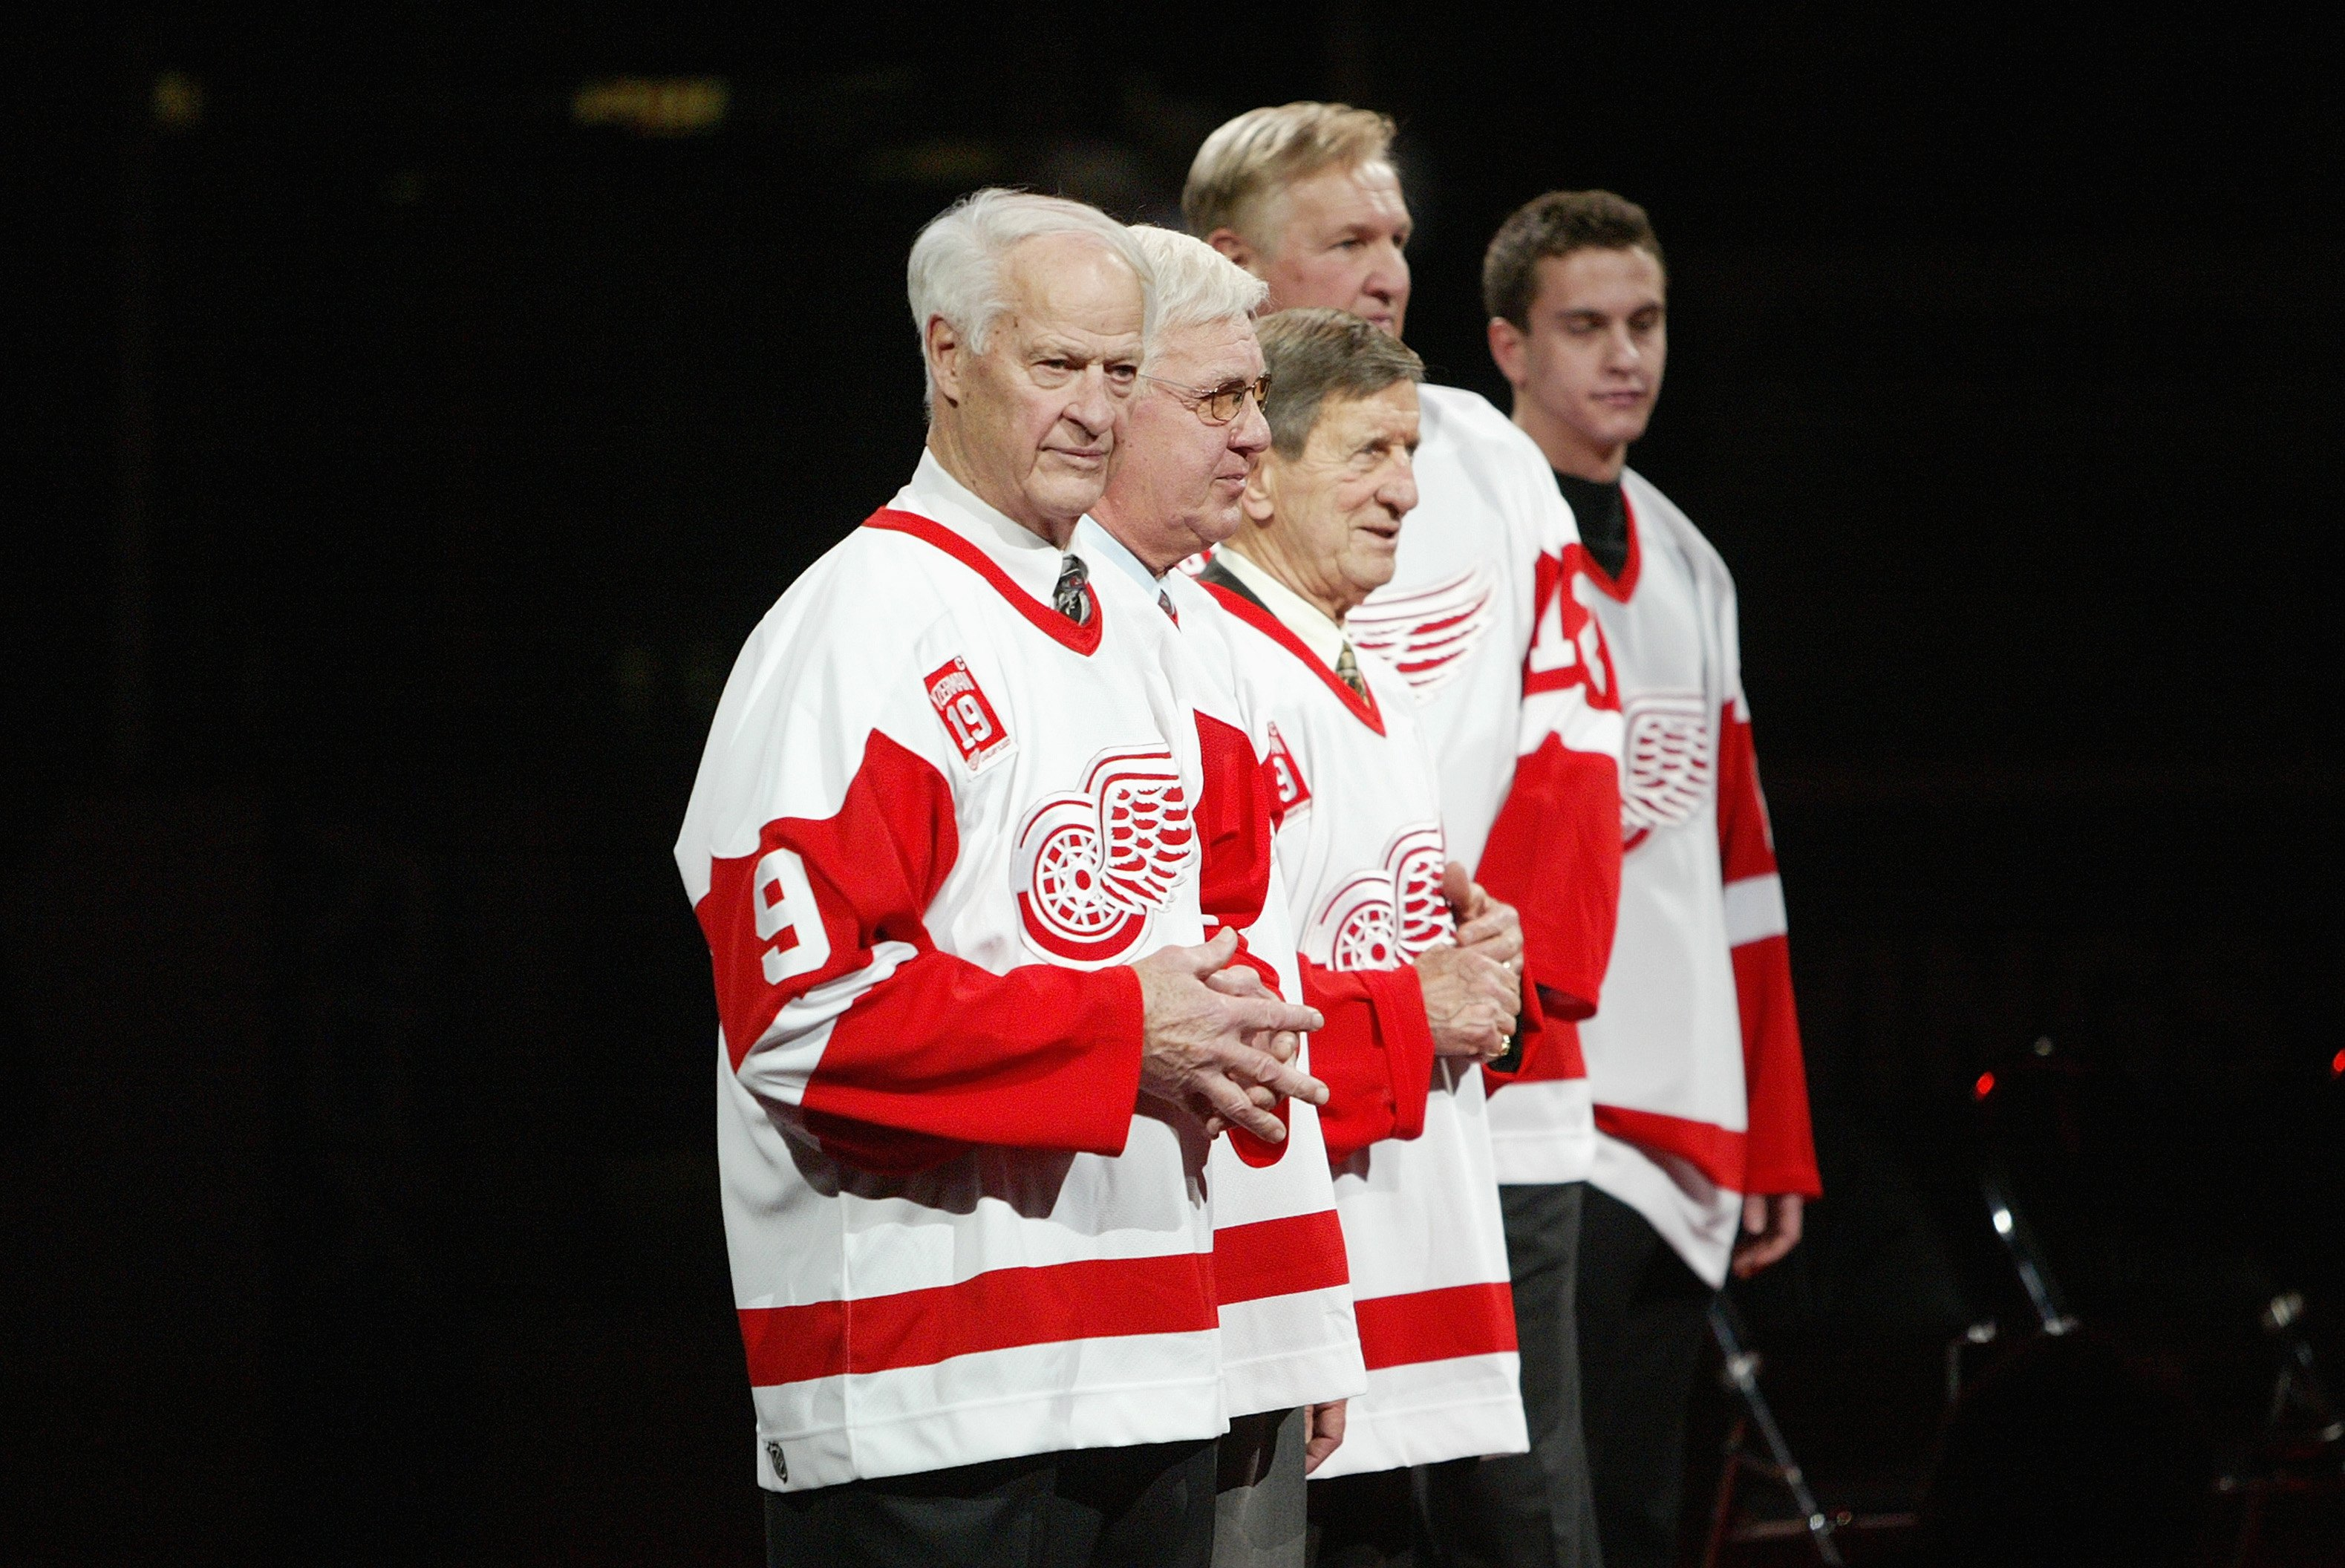 DETROIT - JANUARY 2:  Gordie Howe stands on the ice at the jersey retirement ceremony for Steve Yzerman before the Detroit Red Wings game against the Anaheim Ducks at Joe Louis Arena on January 2, 2007 in Detroit, Michigan. The Red Wings won 2-1. (Photo b